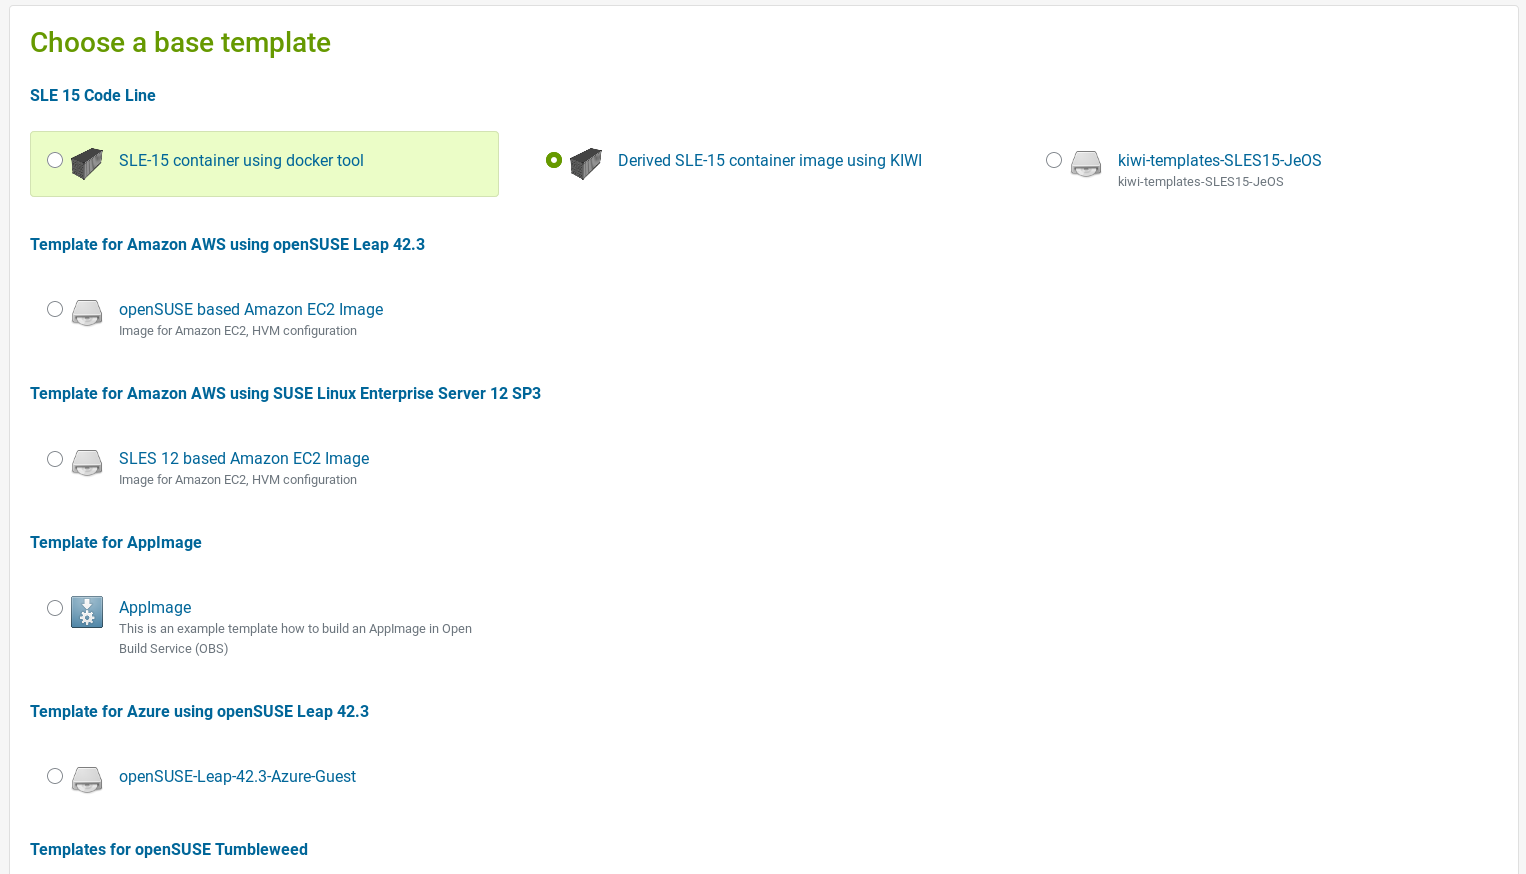 The Search and Kiwi Editor Pages Are Now Part of the